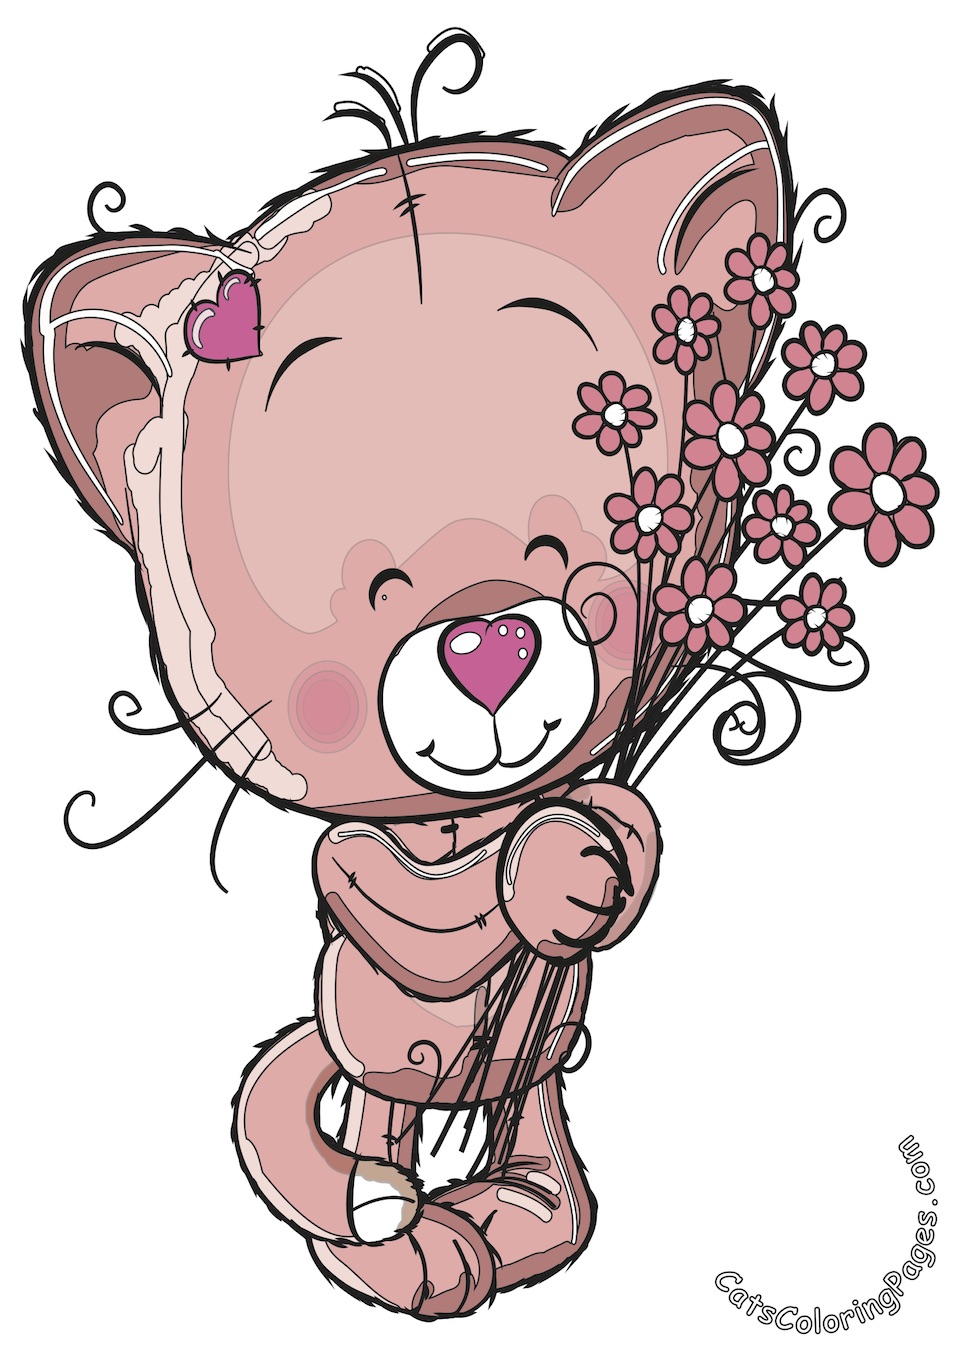 Cute Kitten with Flowers Colored Coloring Page